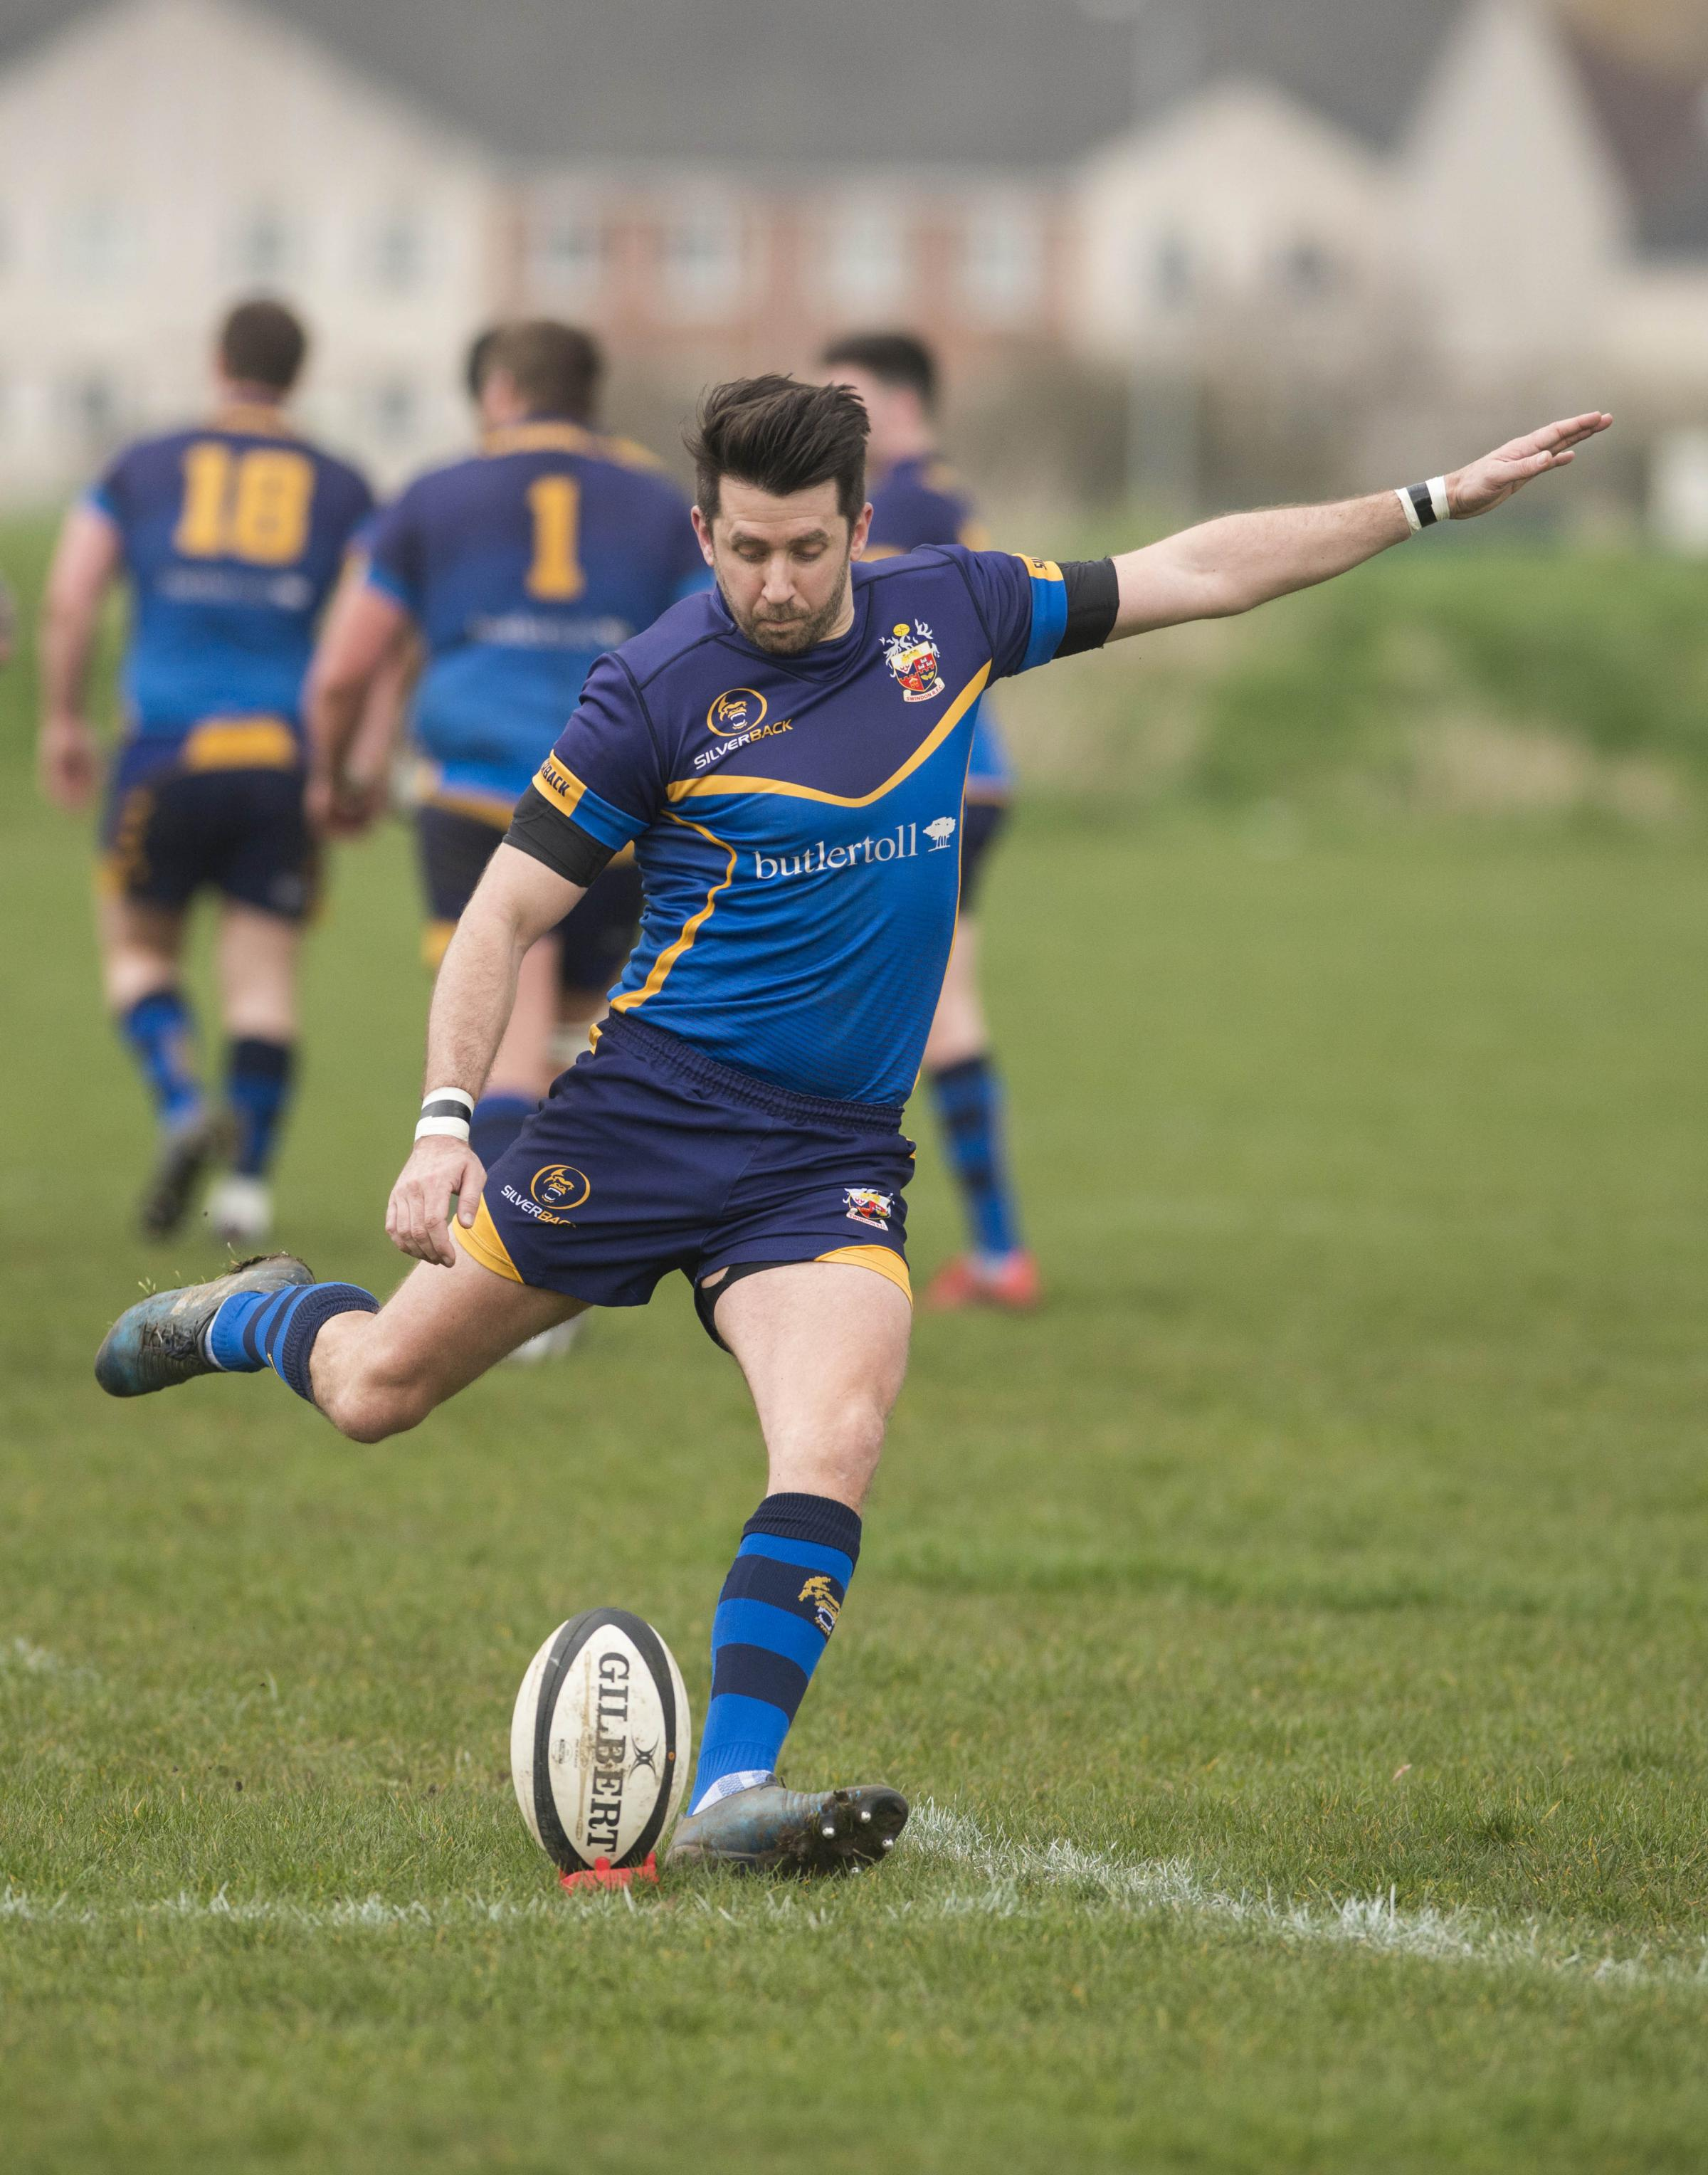 Swindon Rugby v Bicester.Pictured Swindon - Adam Westall.07/04/18.Pictures Clare Green/ www.claregreenphotography.com.